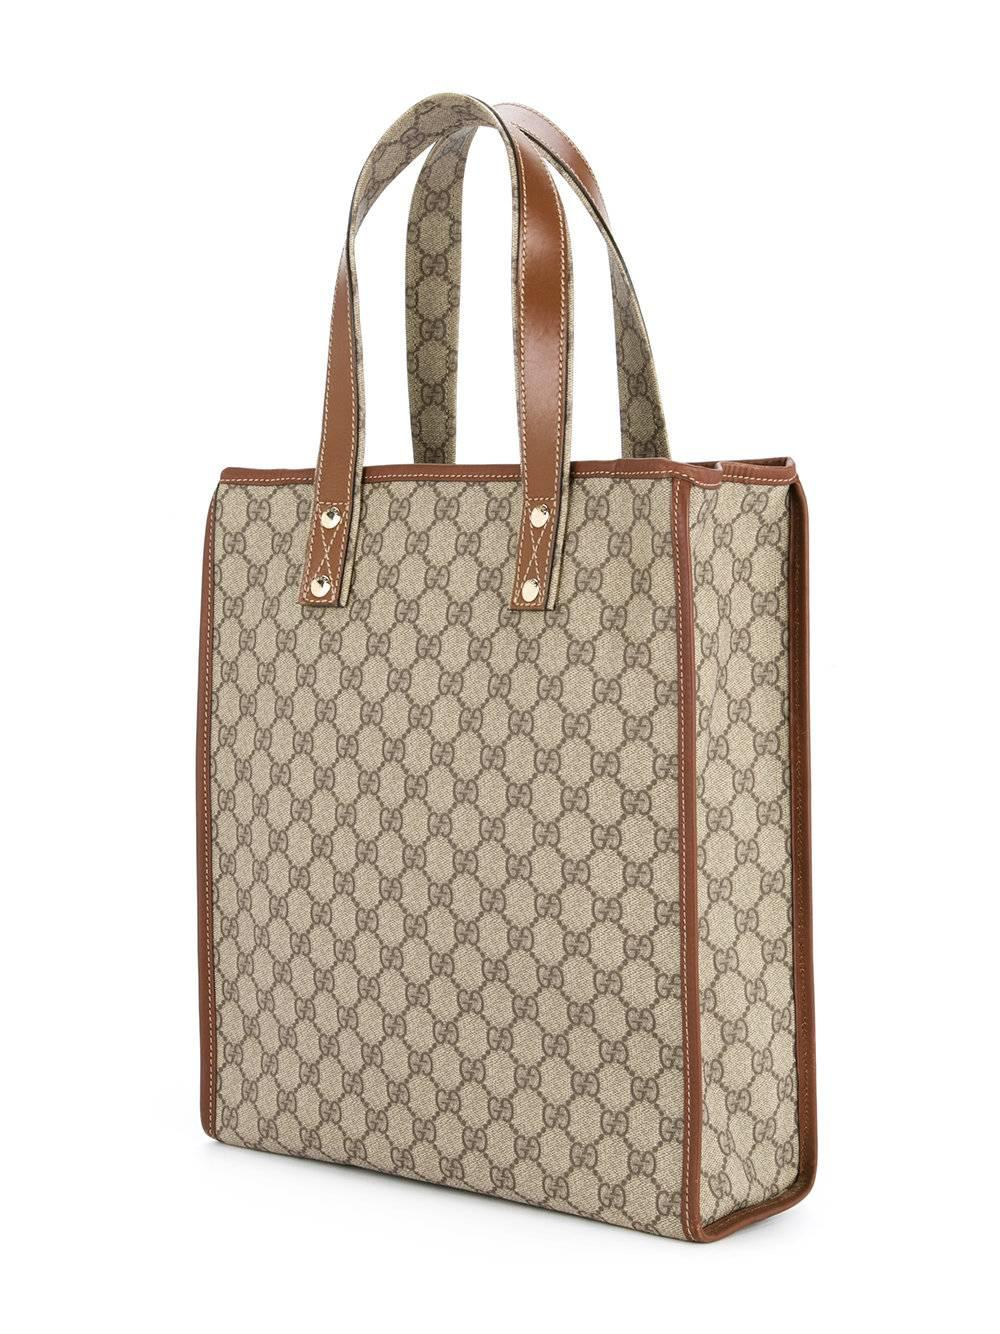 Gucci Monogram Logo Mens Large Carryall Travel Shoulder Top Handle Tote Bag mHX8B7d